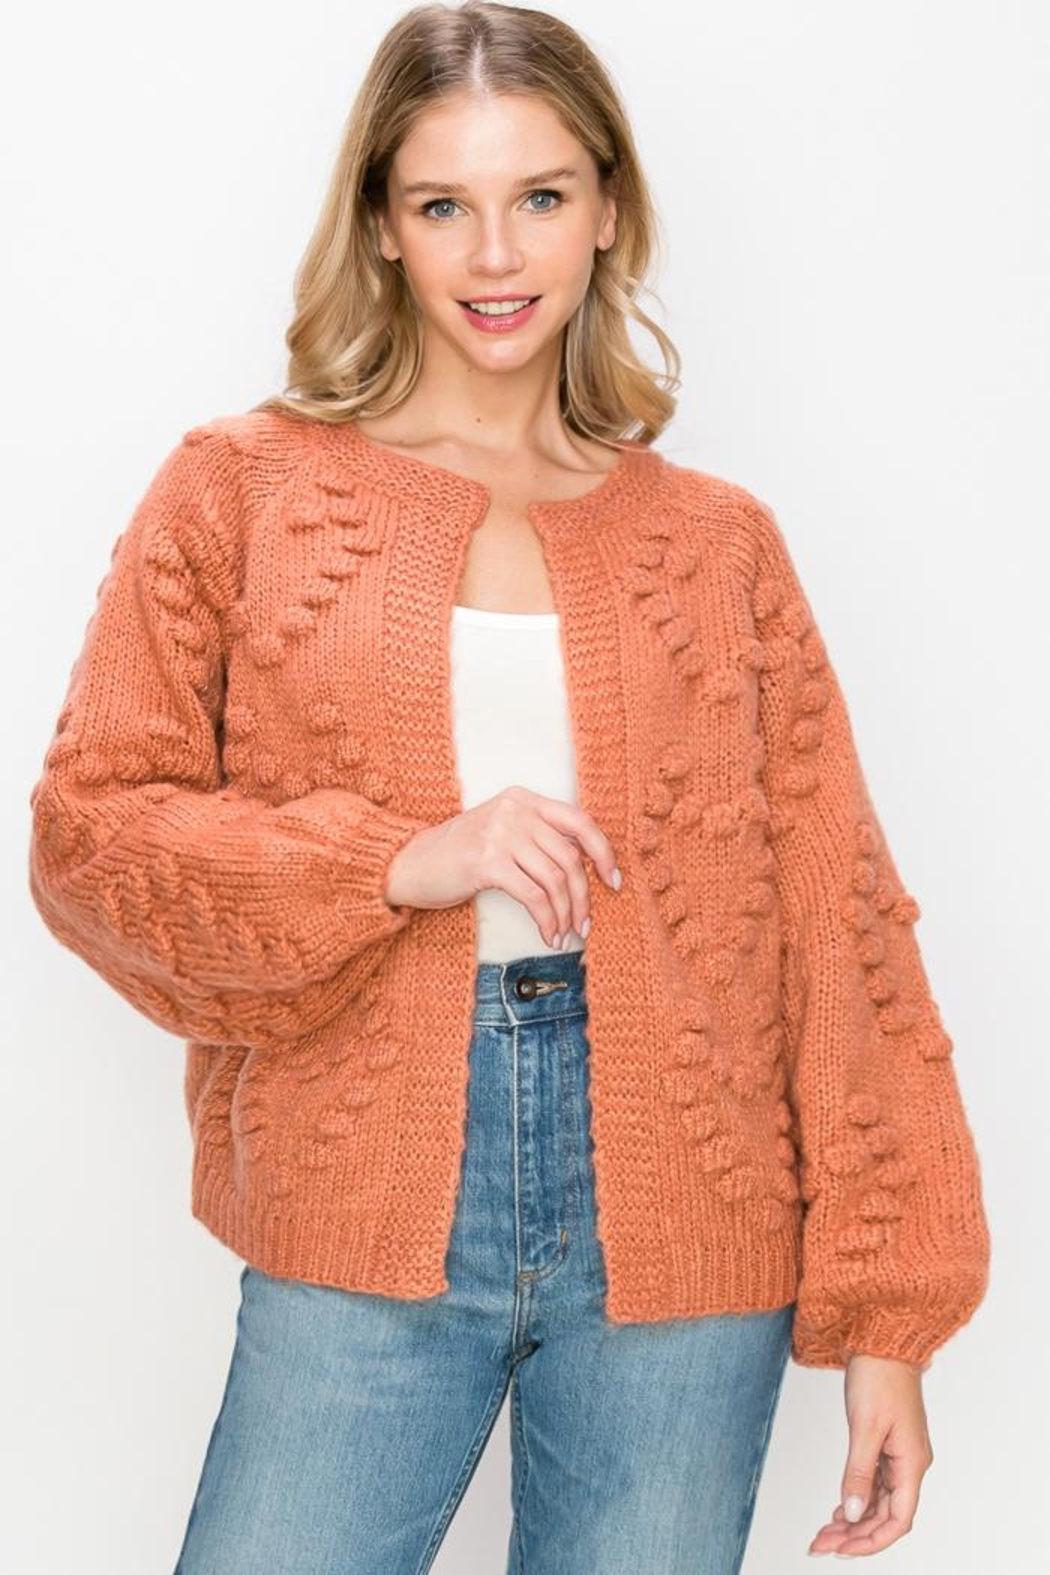 O'LOLA Heart Pompom Chunky Sweater Knit Cardigan - Front Cropped Image